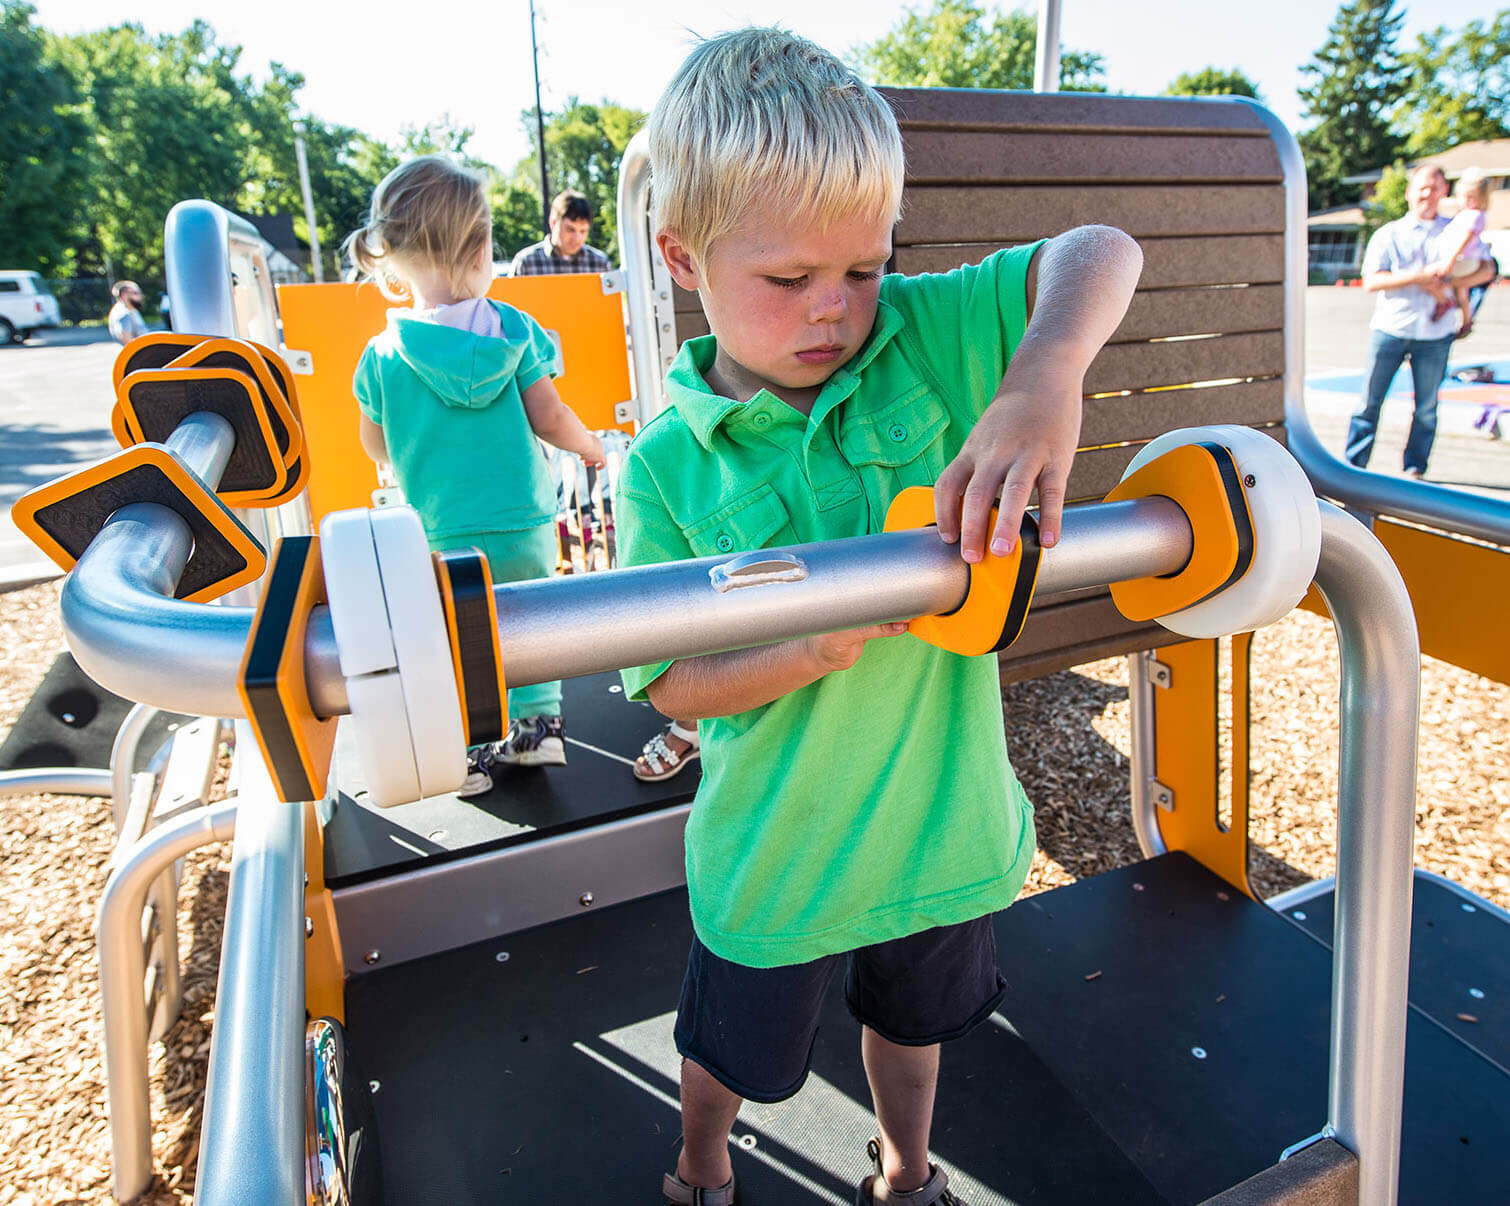 A small child plays on a playground planned for Canals Townhomes in Airdrie.